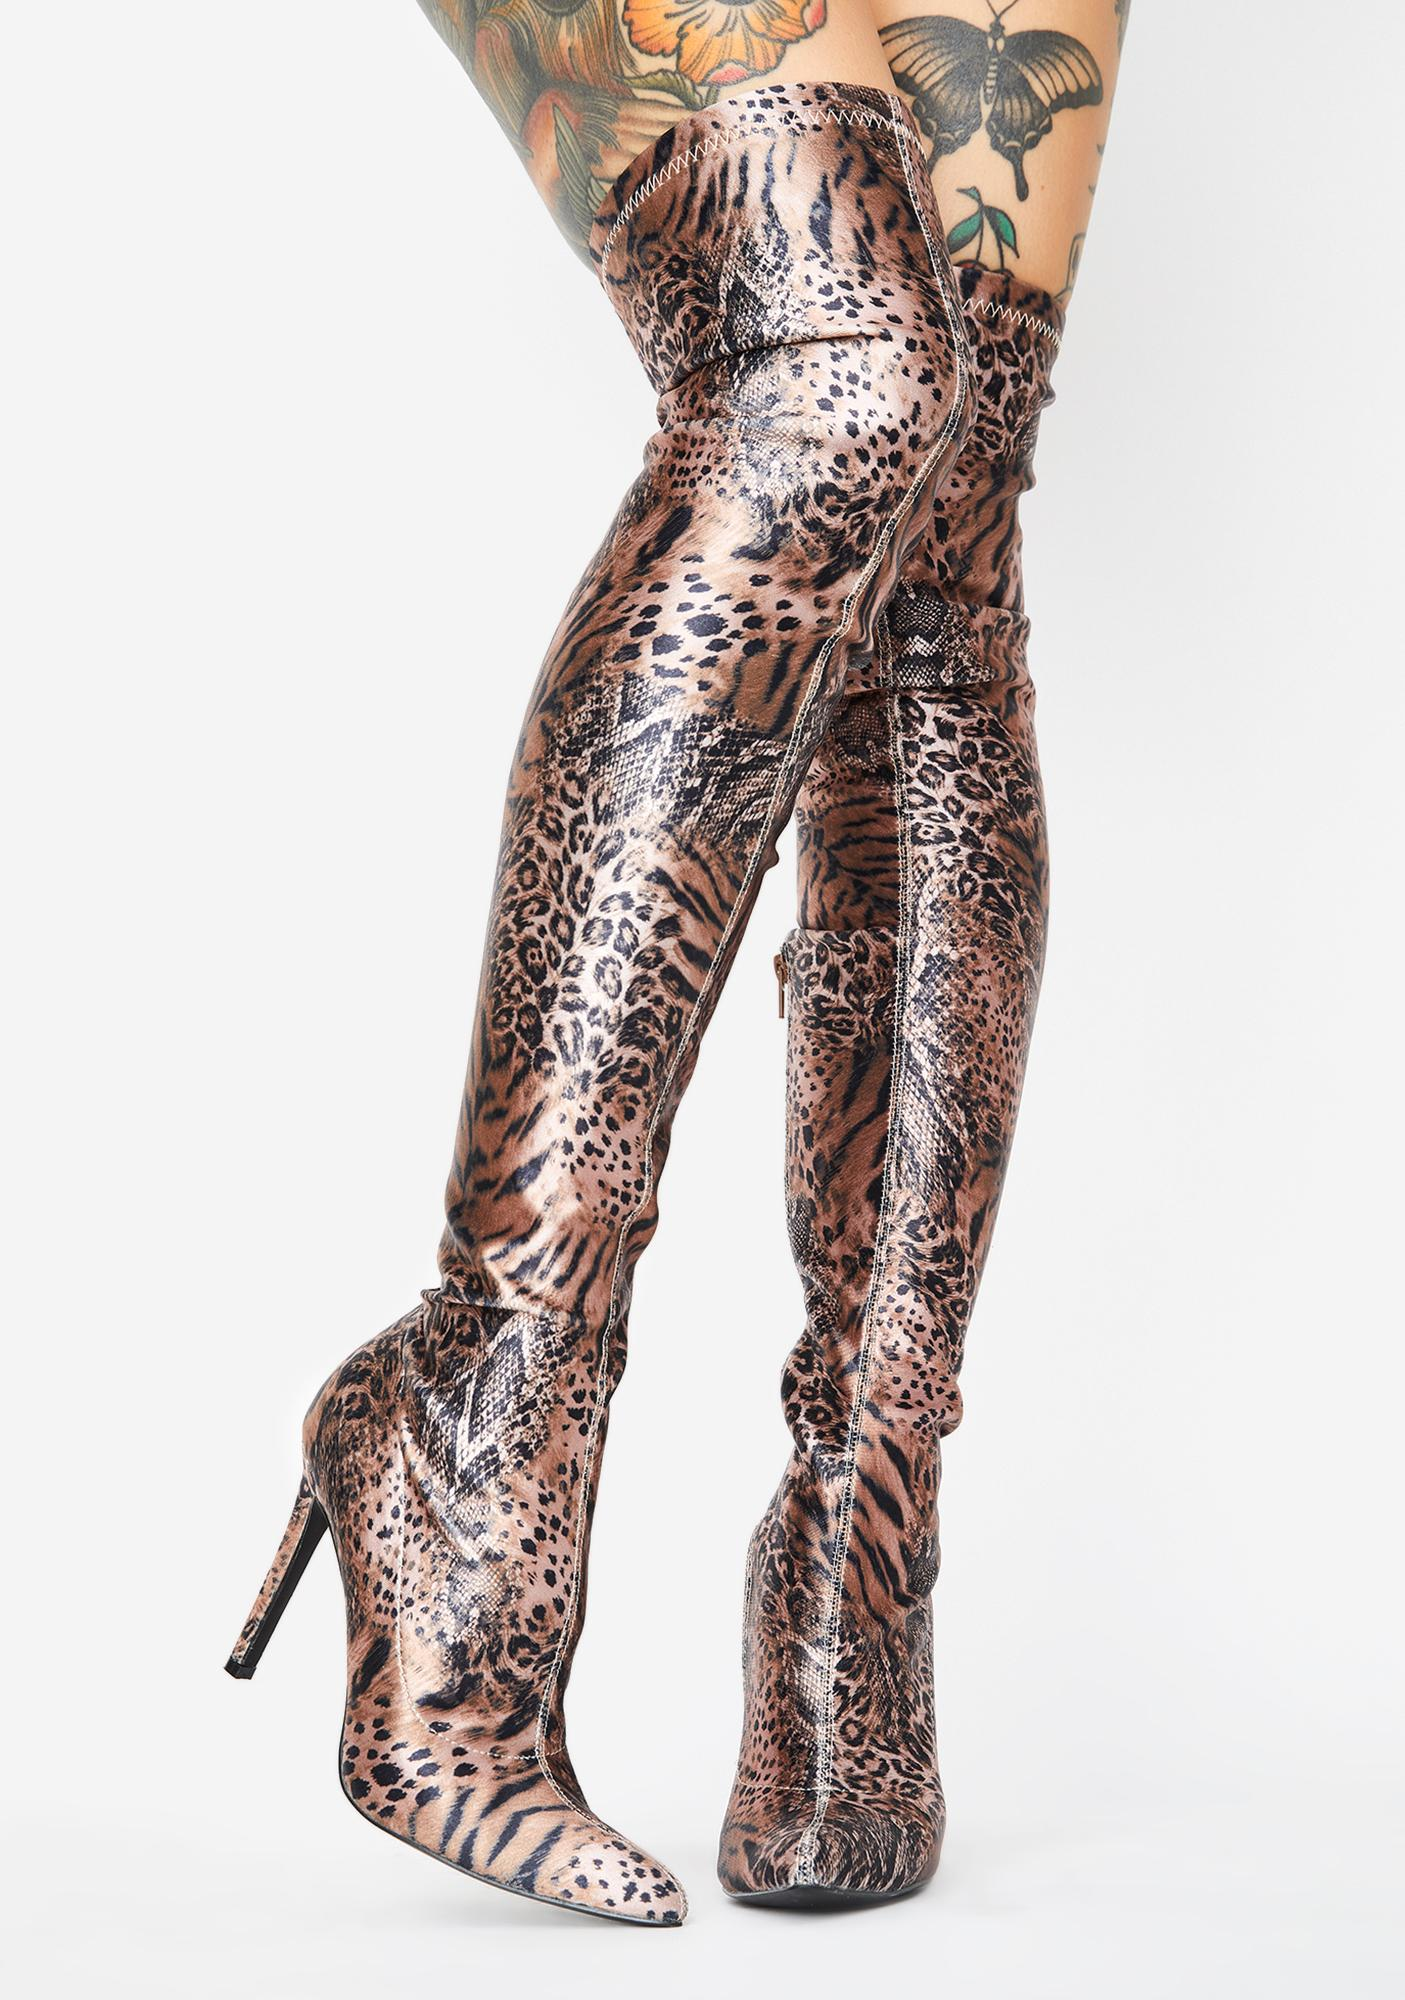 Sugar Thrillz Fiercely Unphased Thigh High Boots